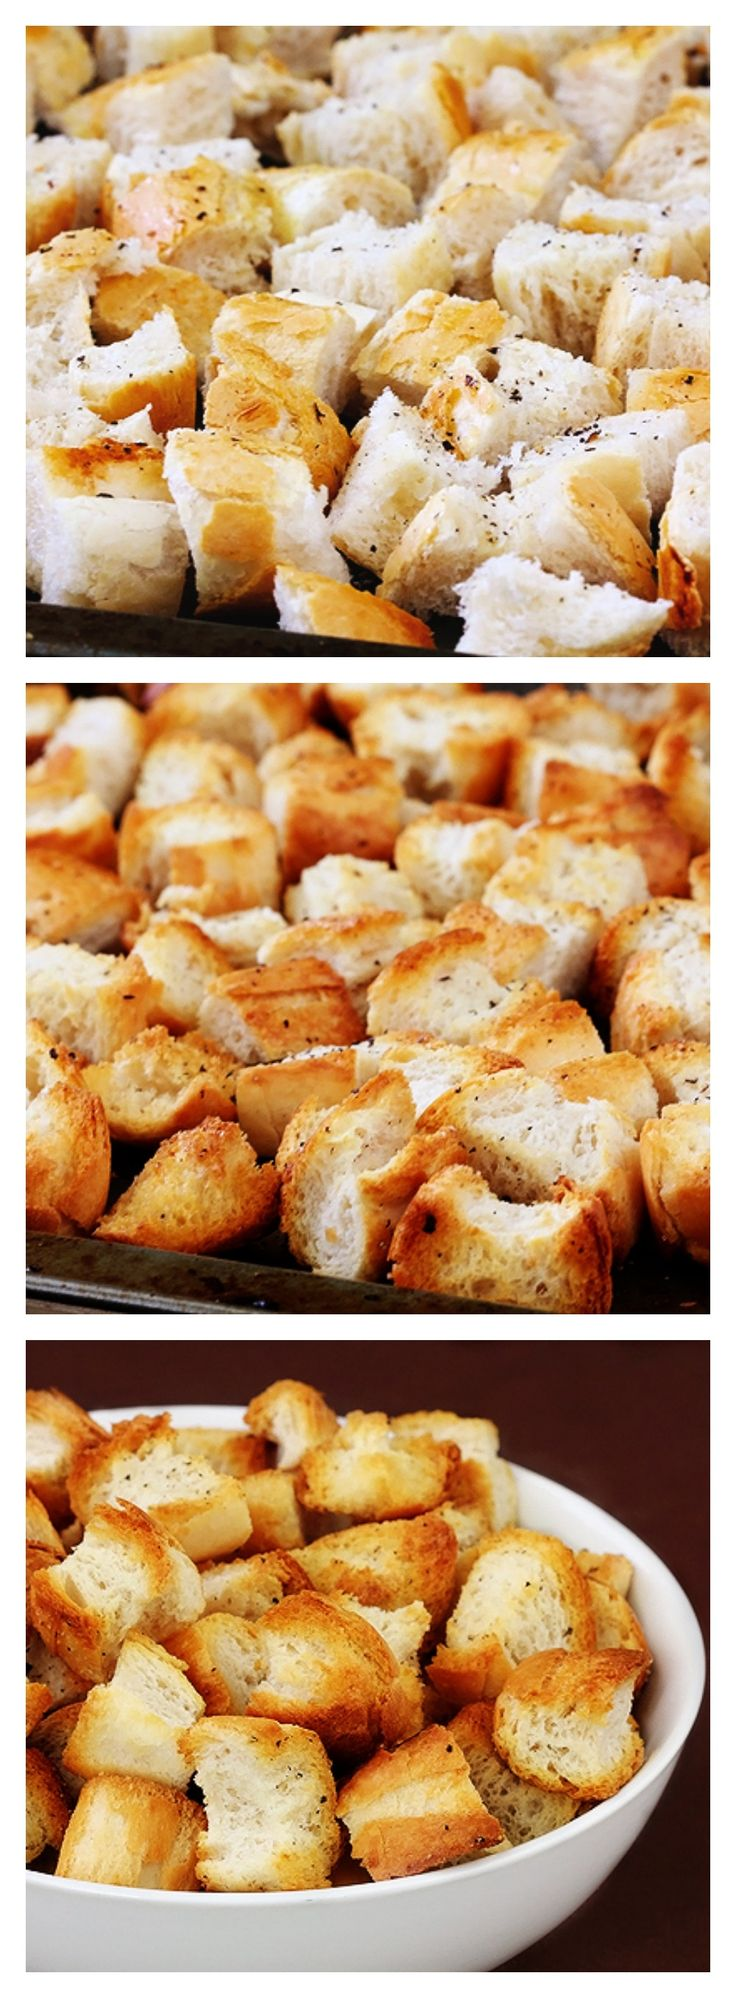 How To Make Homemade Croutons -- it's SUPER easy, and homemade tastes much better than store-bought | gimmesomeoven.com #howto #tutorial